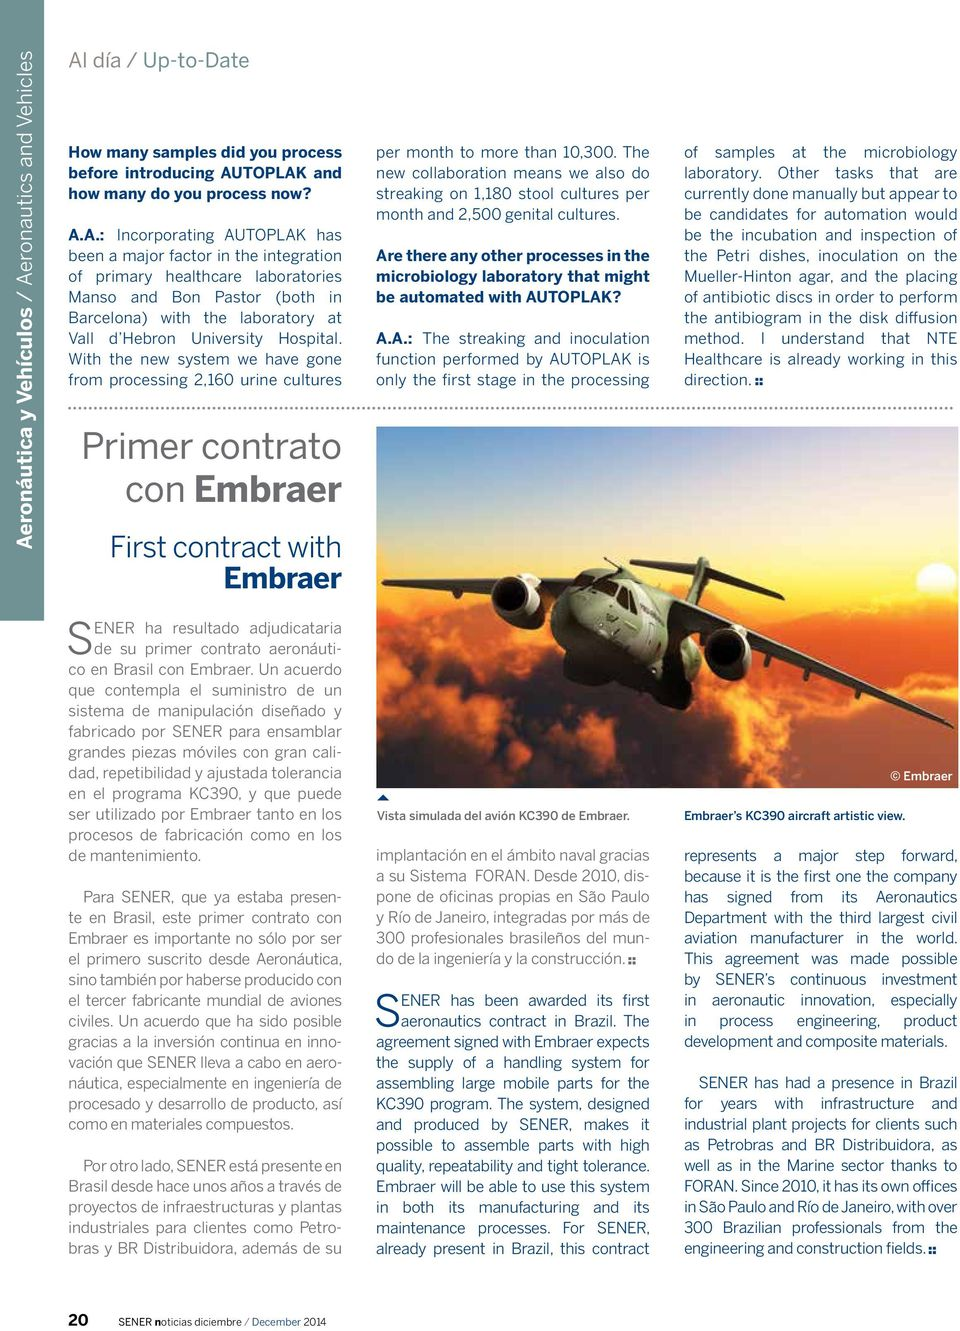 With the new system we have gone from processing 2,160 urine cultures Primer contrato con Embraer First contract with Embraer per month to more than 10,300.